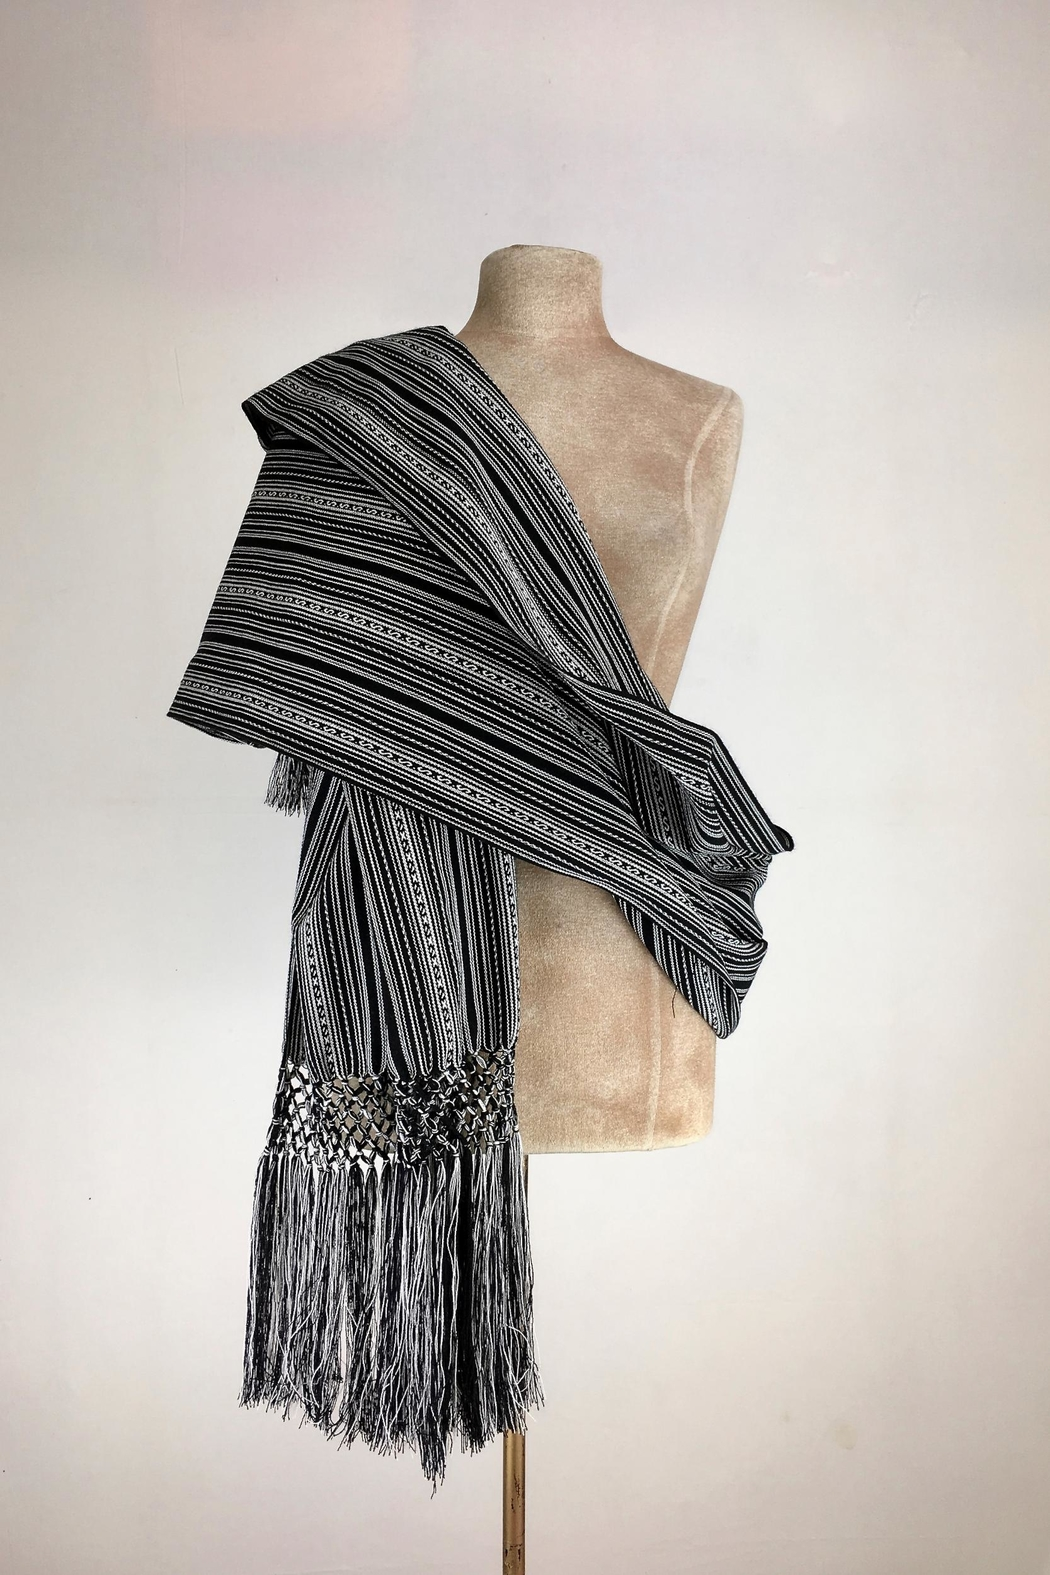 Unbranded Manta-Inca-Woven-Textile Handcrafted Rebozo-Shawl - Main Image